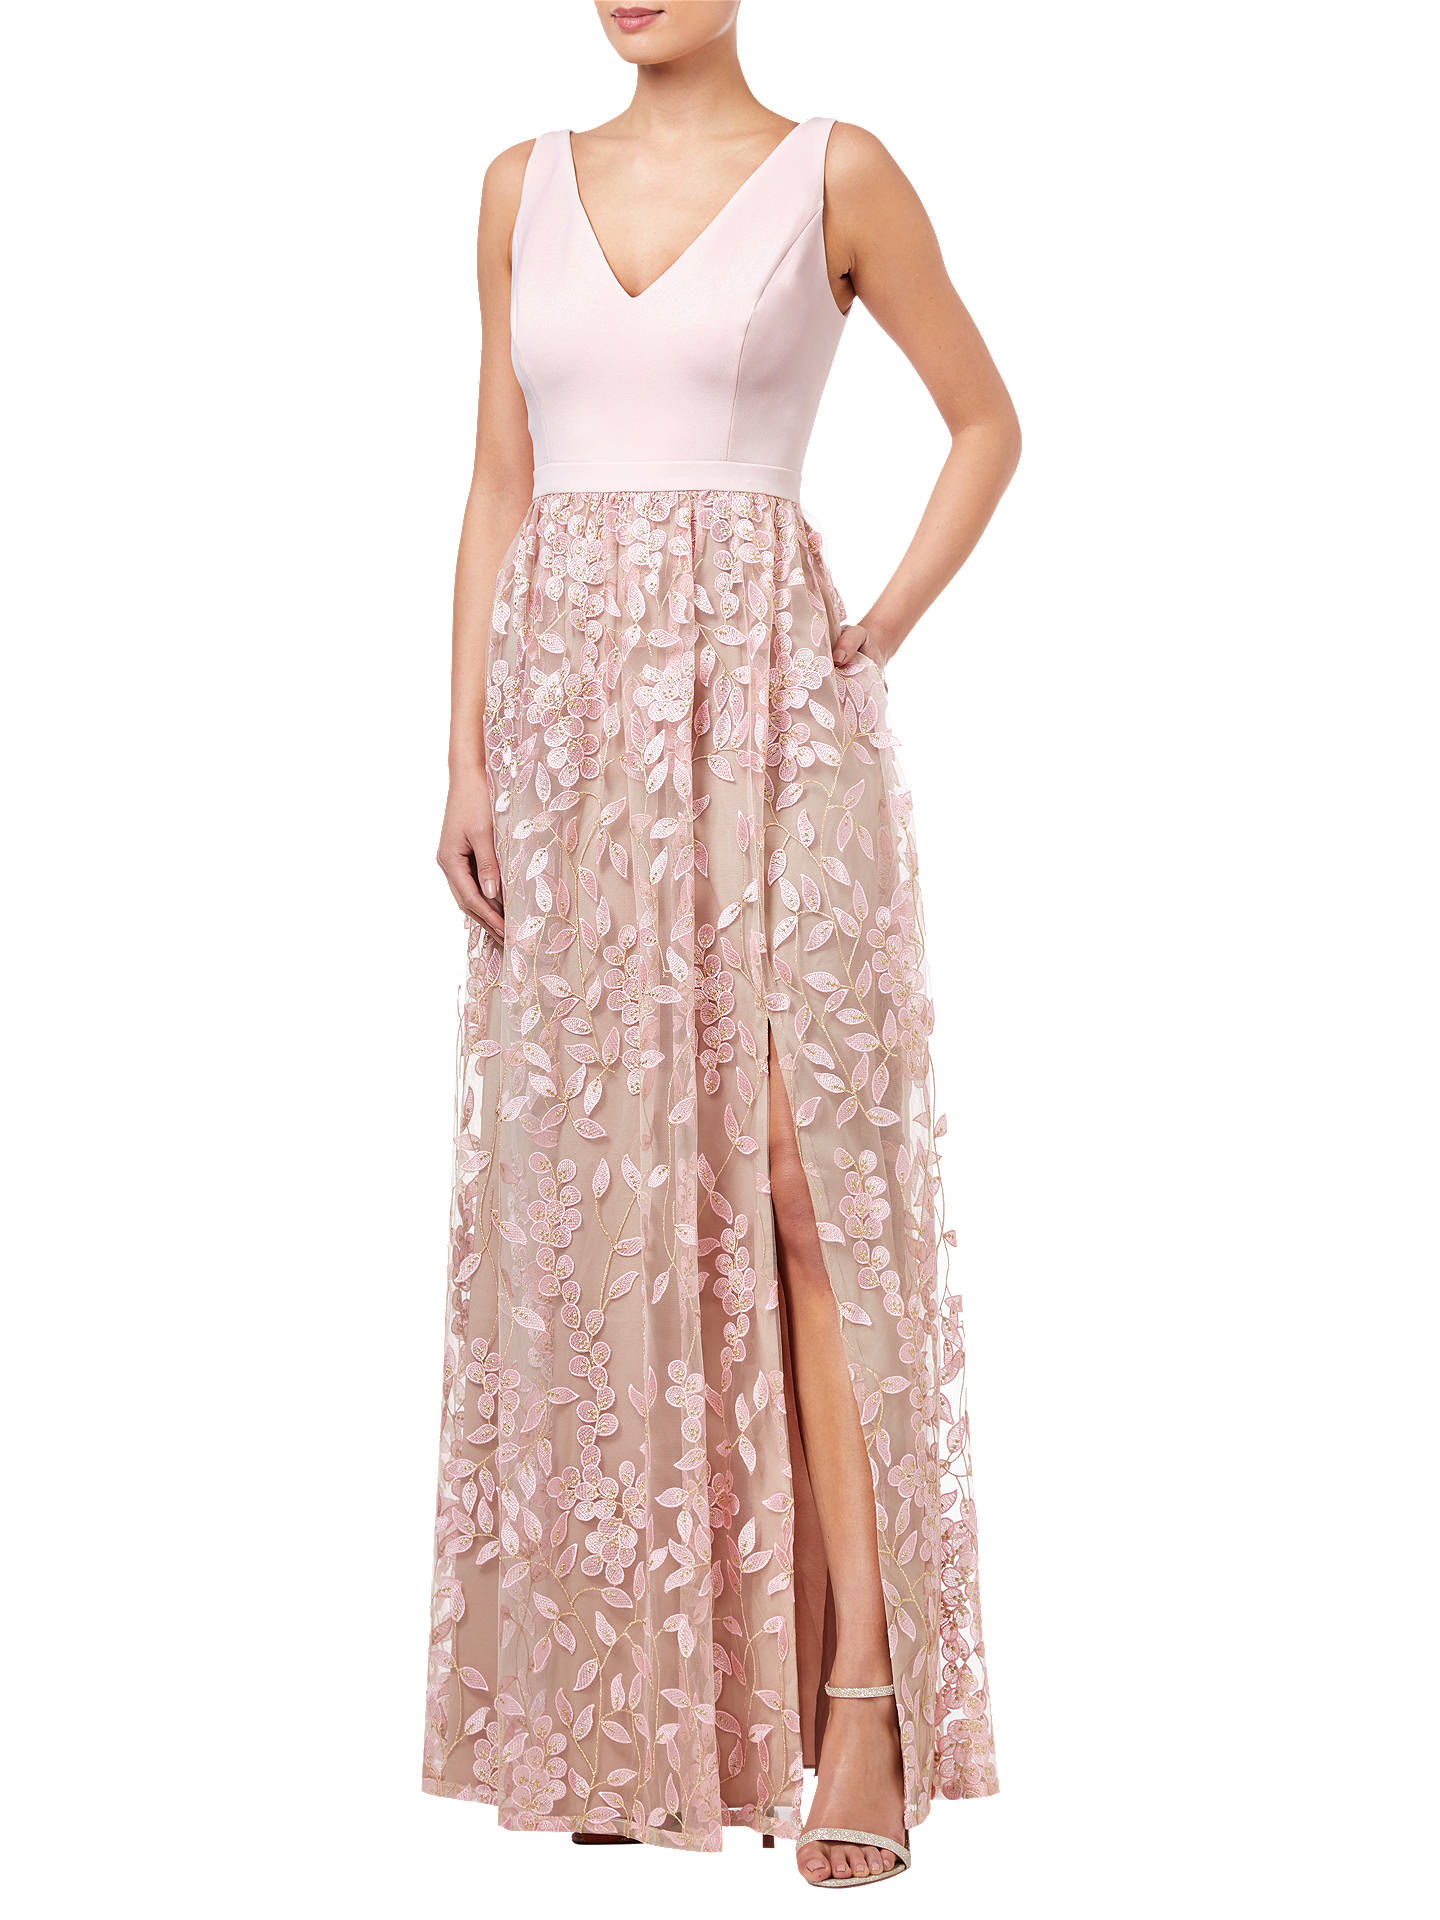 0283db6b9f Buy Adrianna Papell Embellished Tulle Dress, Satin Blush, 8 Online at  johnlewis.com ...